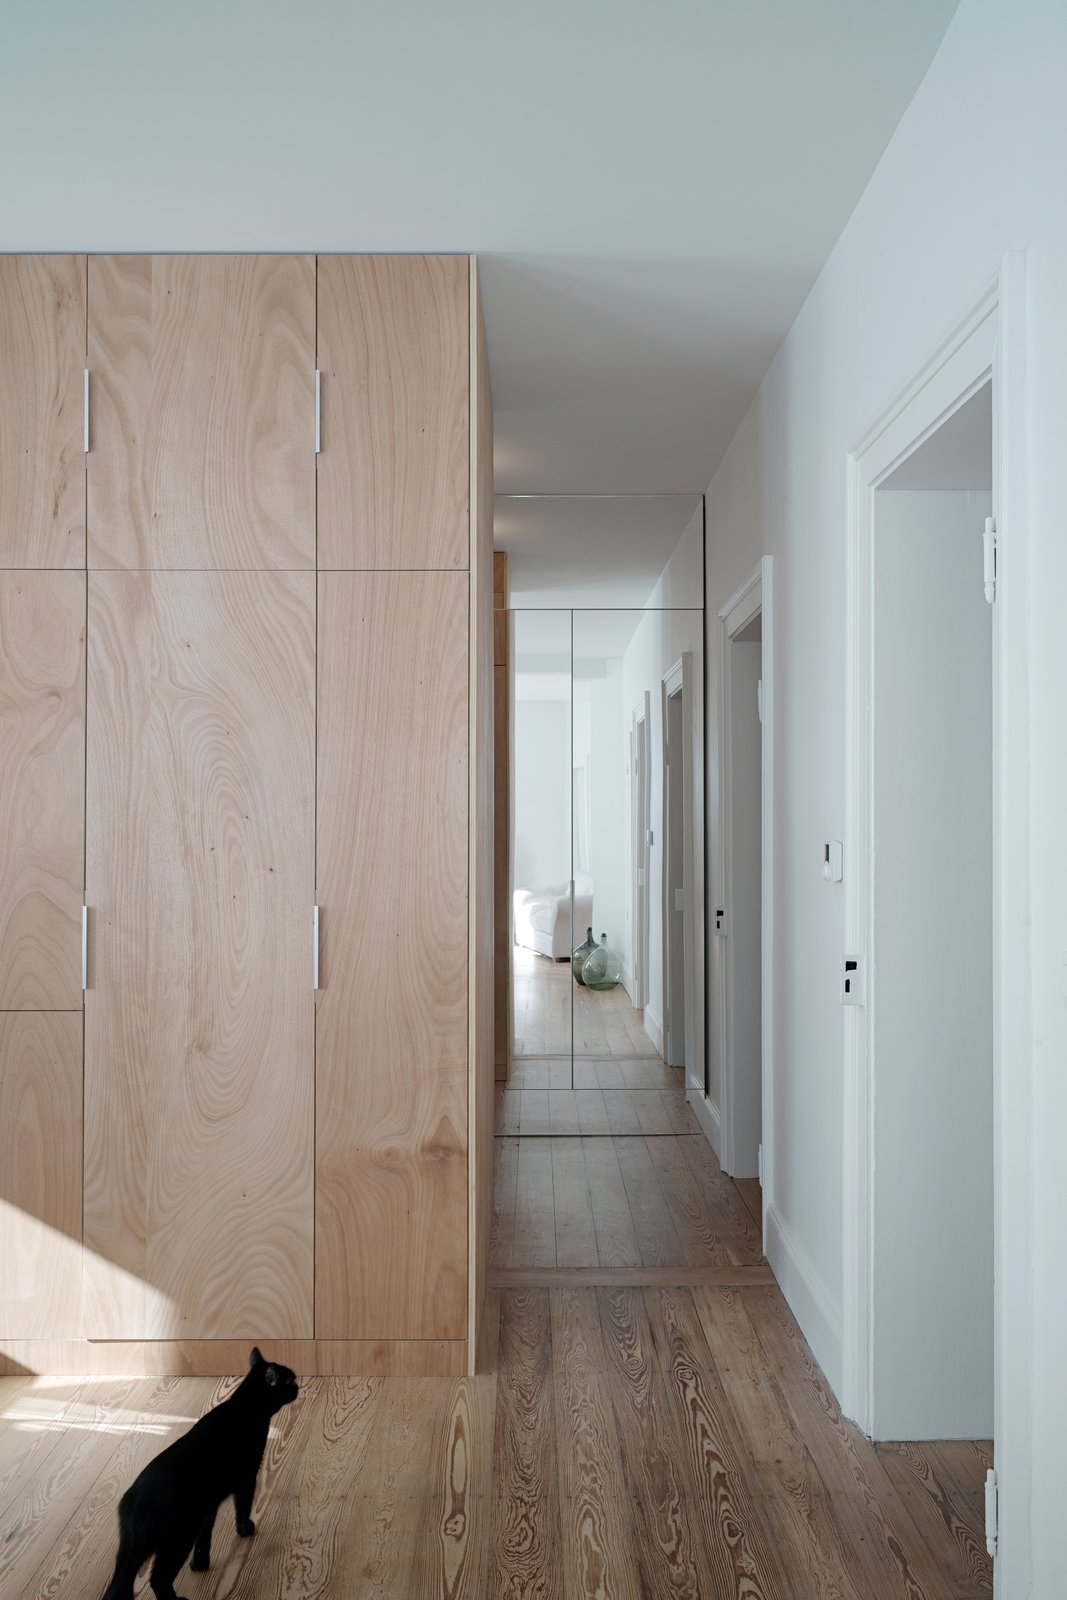 Living Room and Medium Hardwood Floor a mirror wall in the background  Corner Apartment in Strasbourg, France by Dratler Duthoit